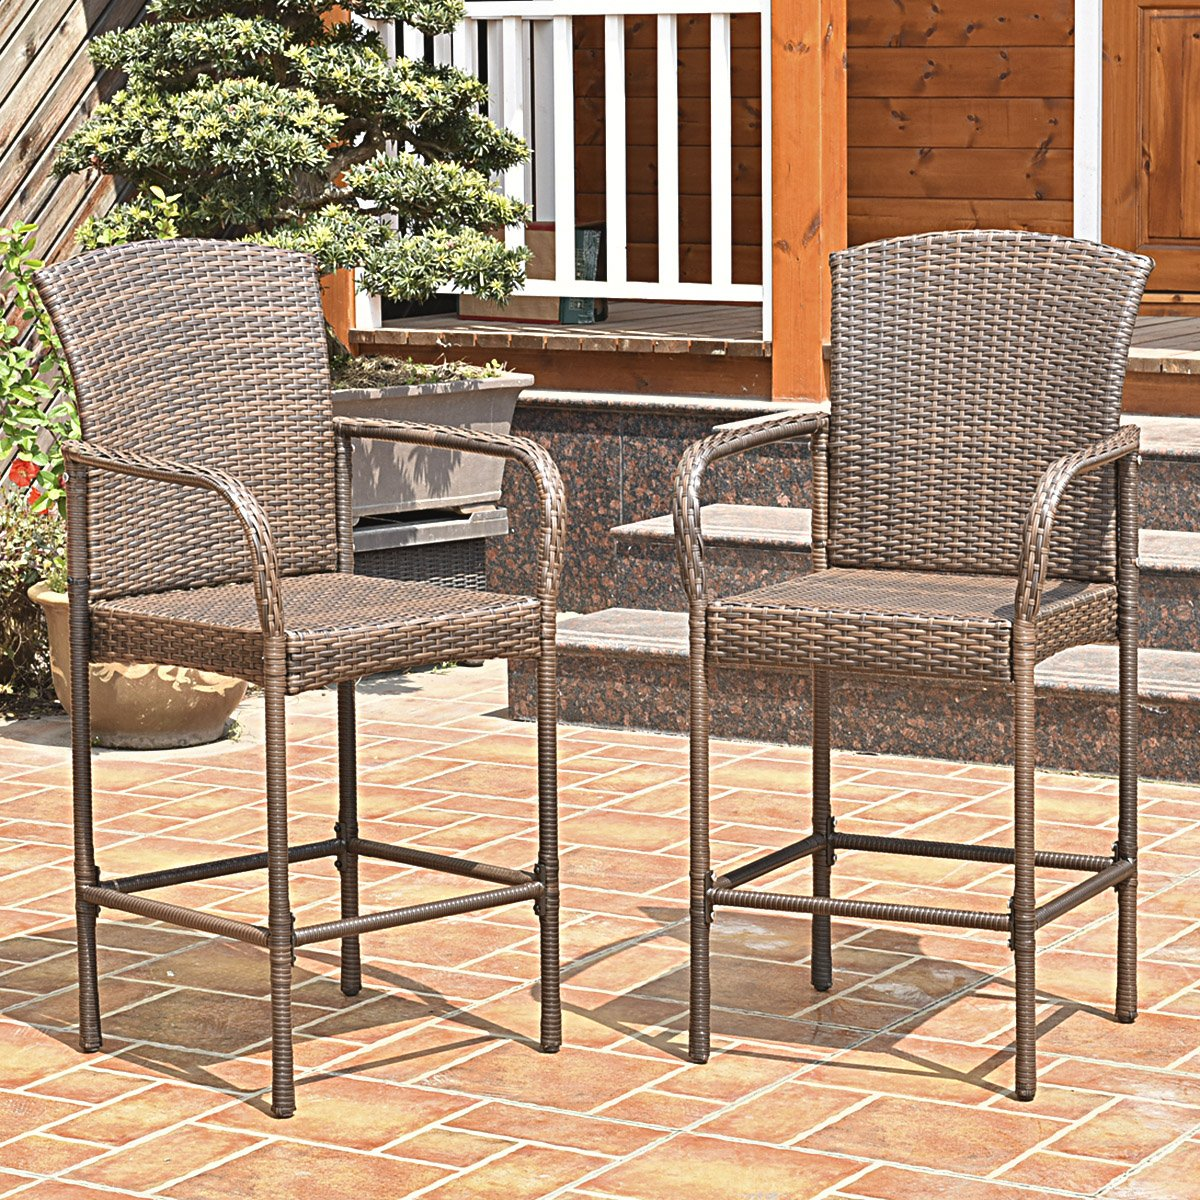 Costway Rattan Wicker Bar Stool Outdoor Backyard Chair Patio Furniture With Armrest Set of 2